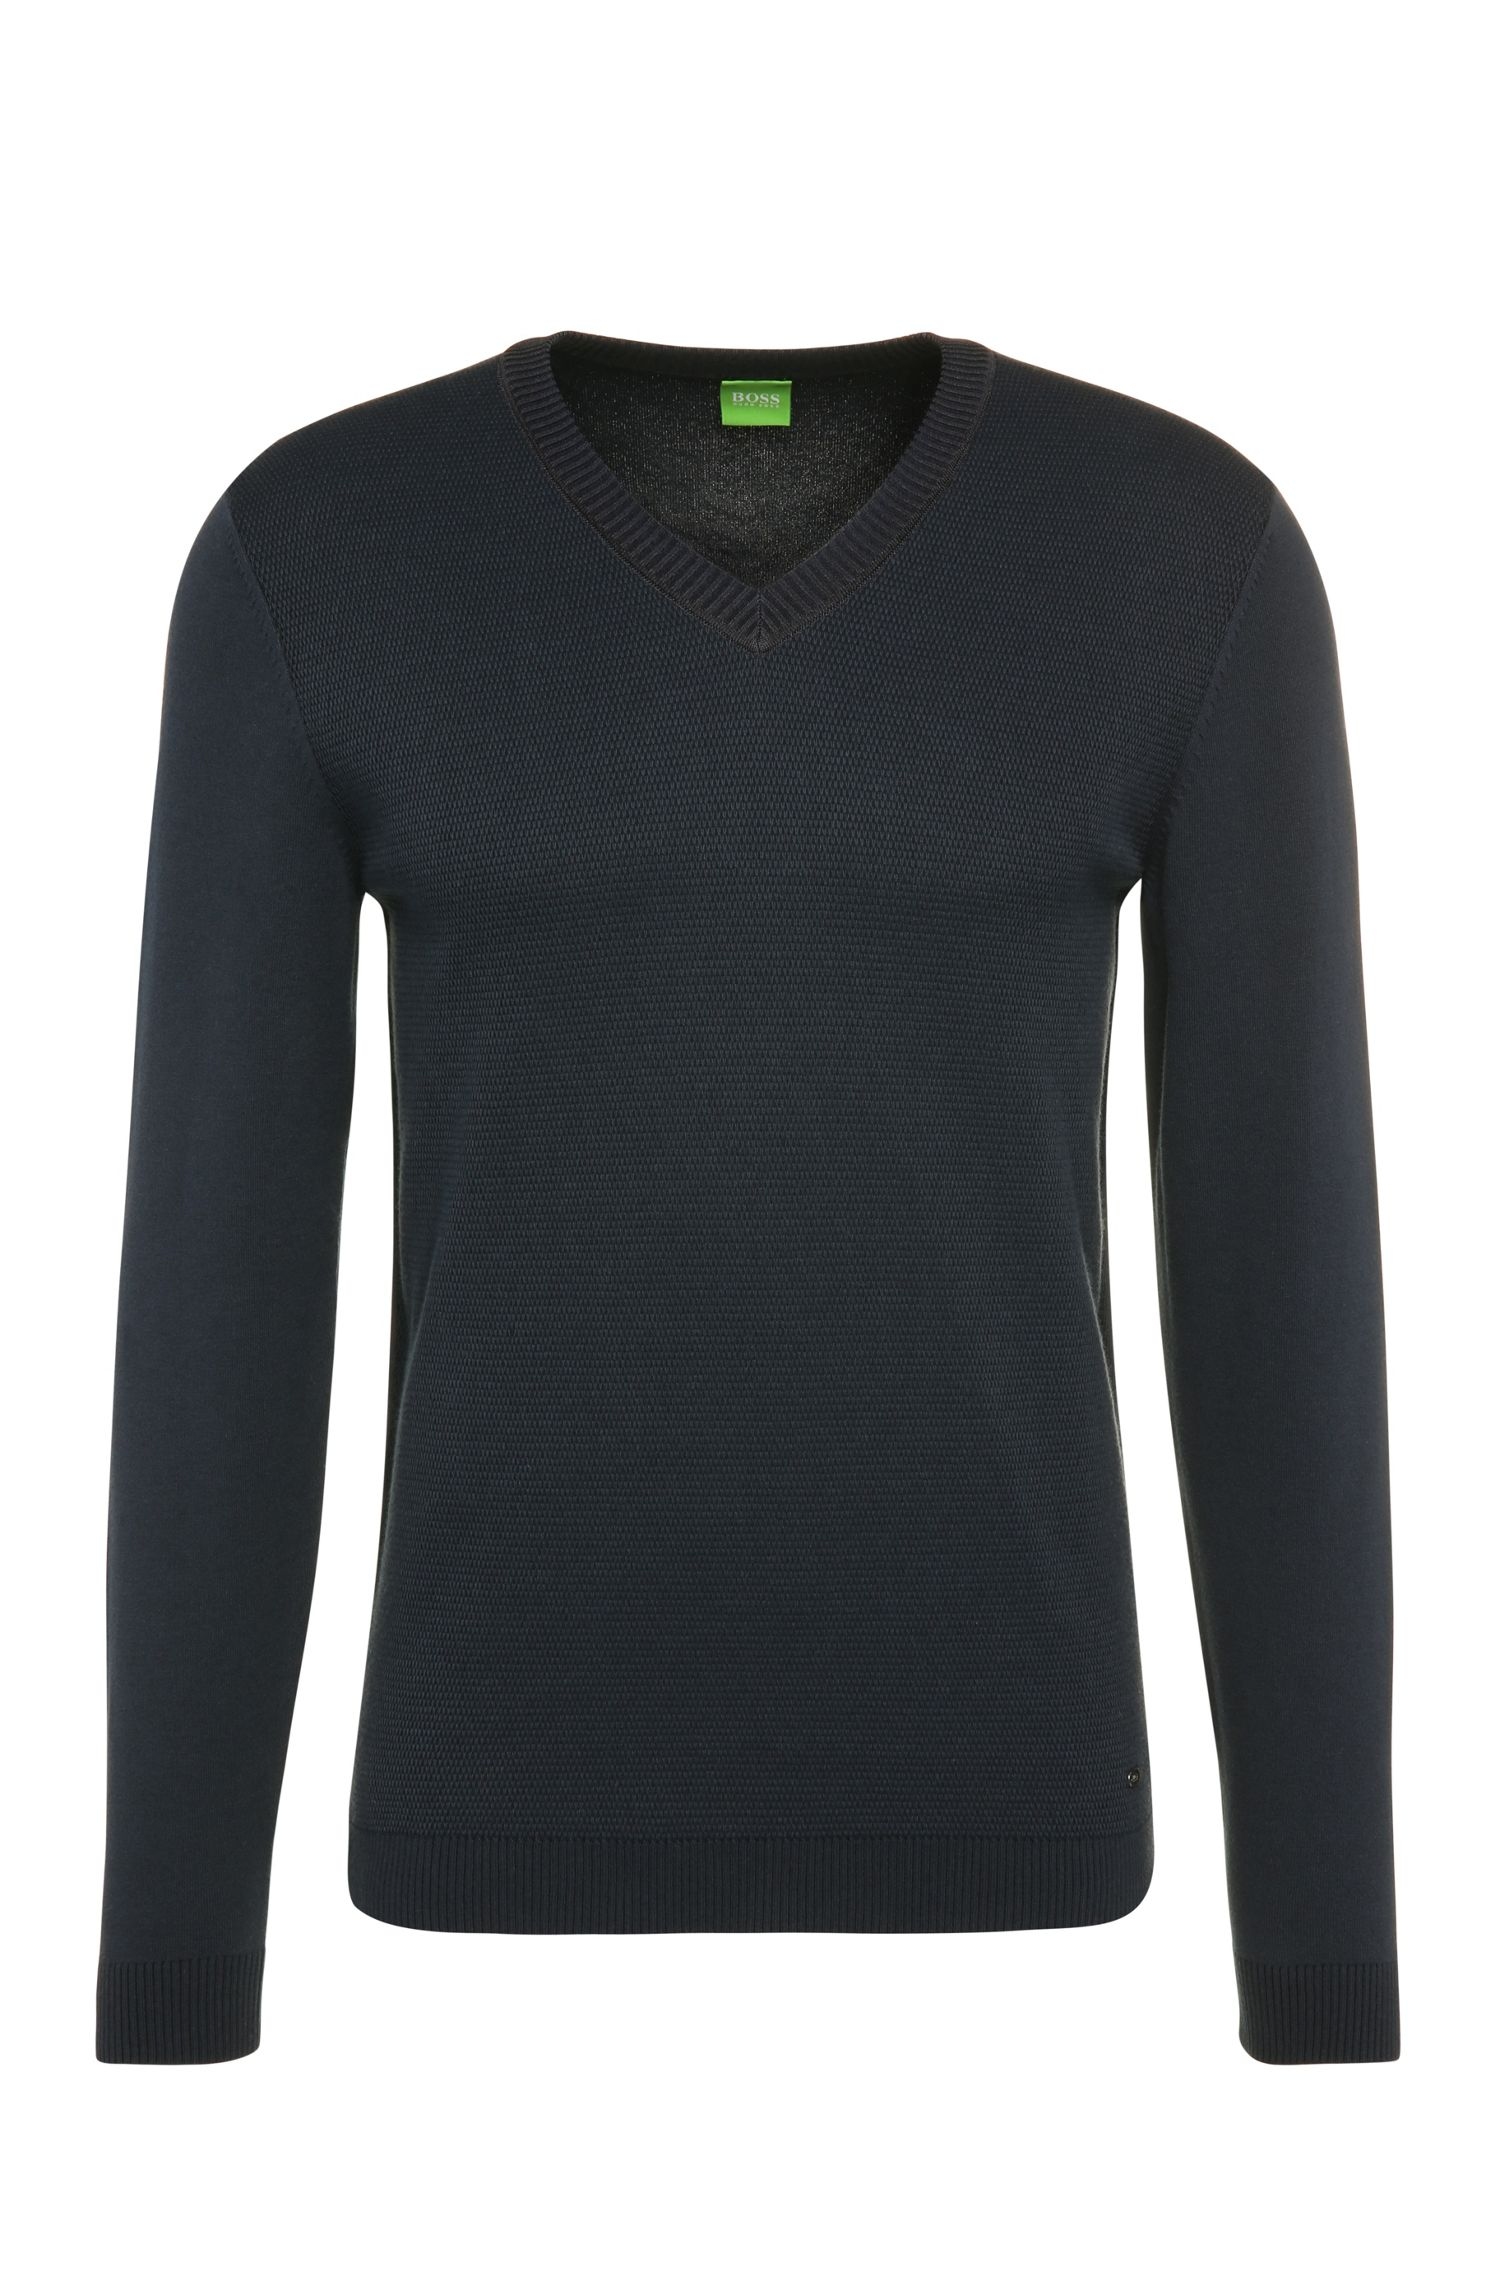 Slim-fit knit sweater in stretch cotton blend: 'Vortel'